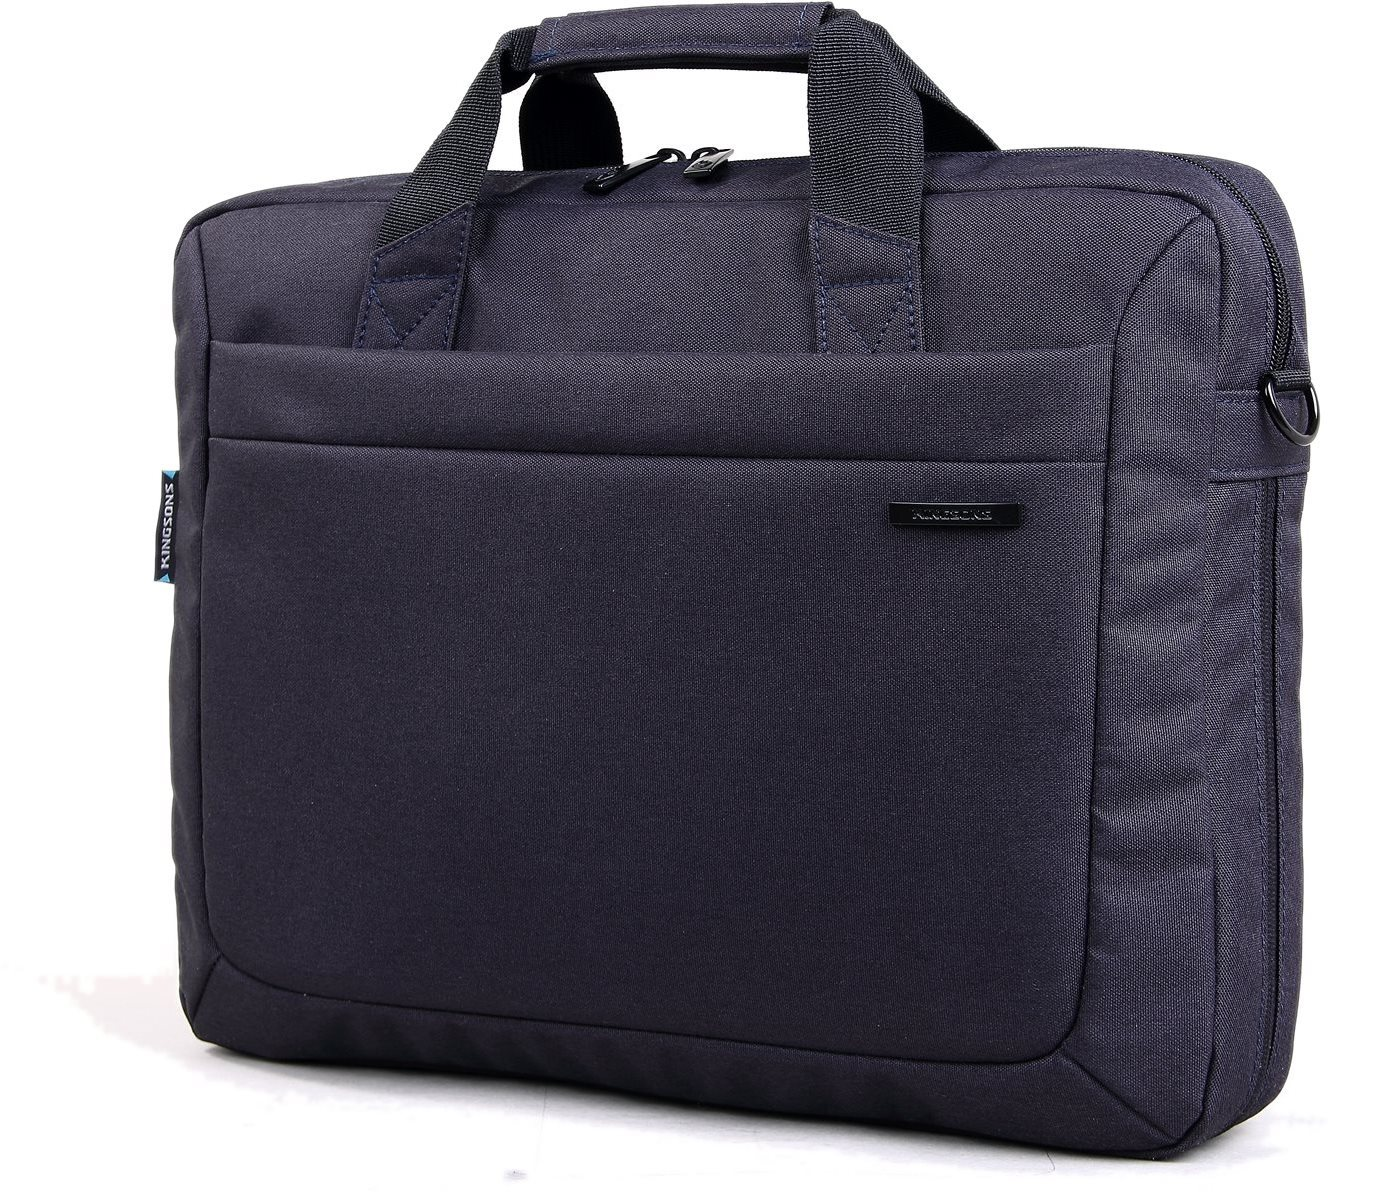 Kingsons City Commuter Laptop Bag 15.6